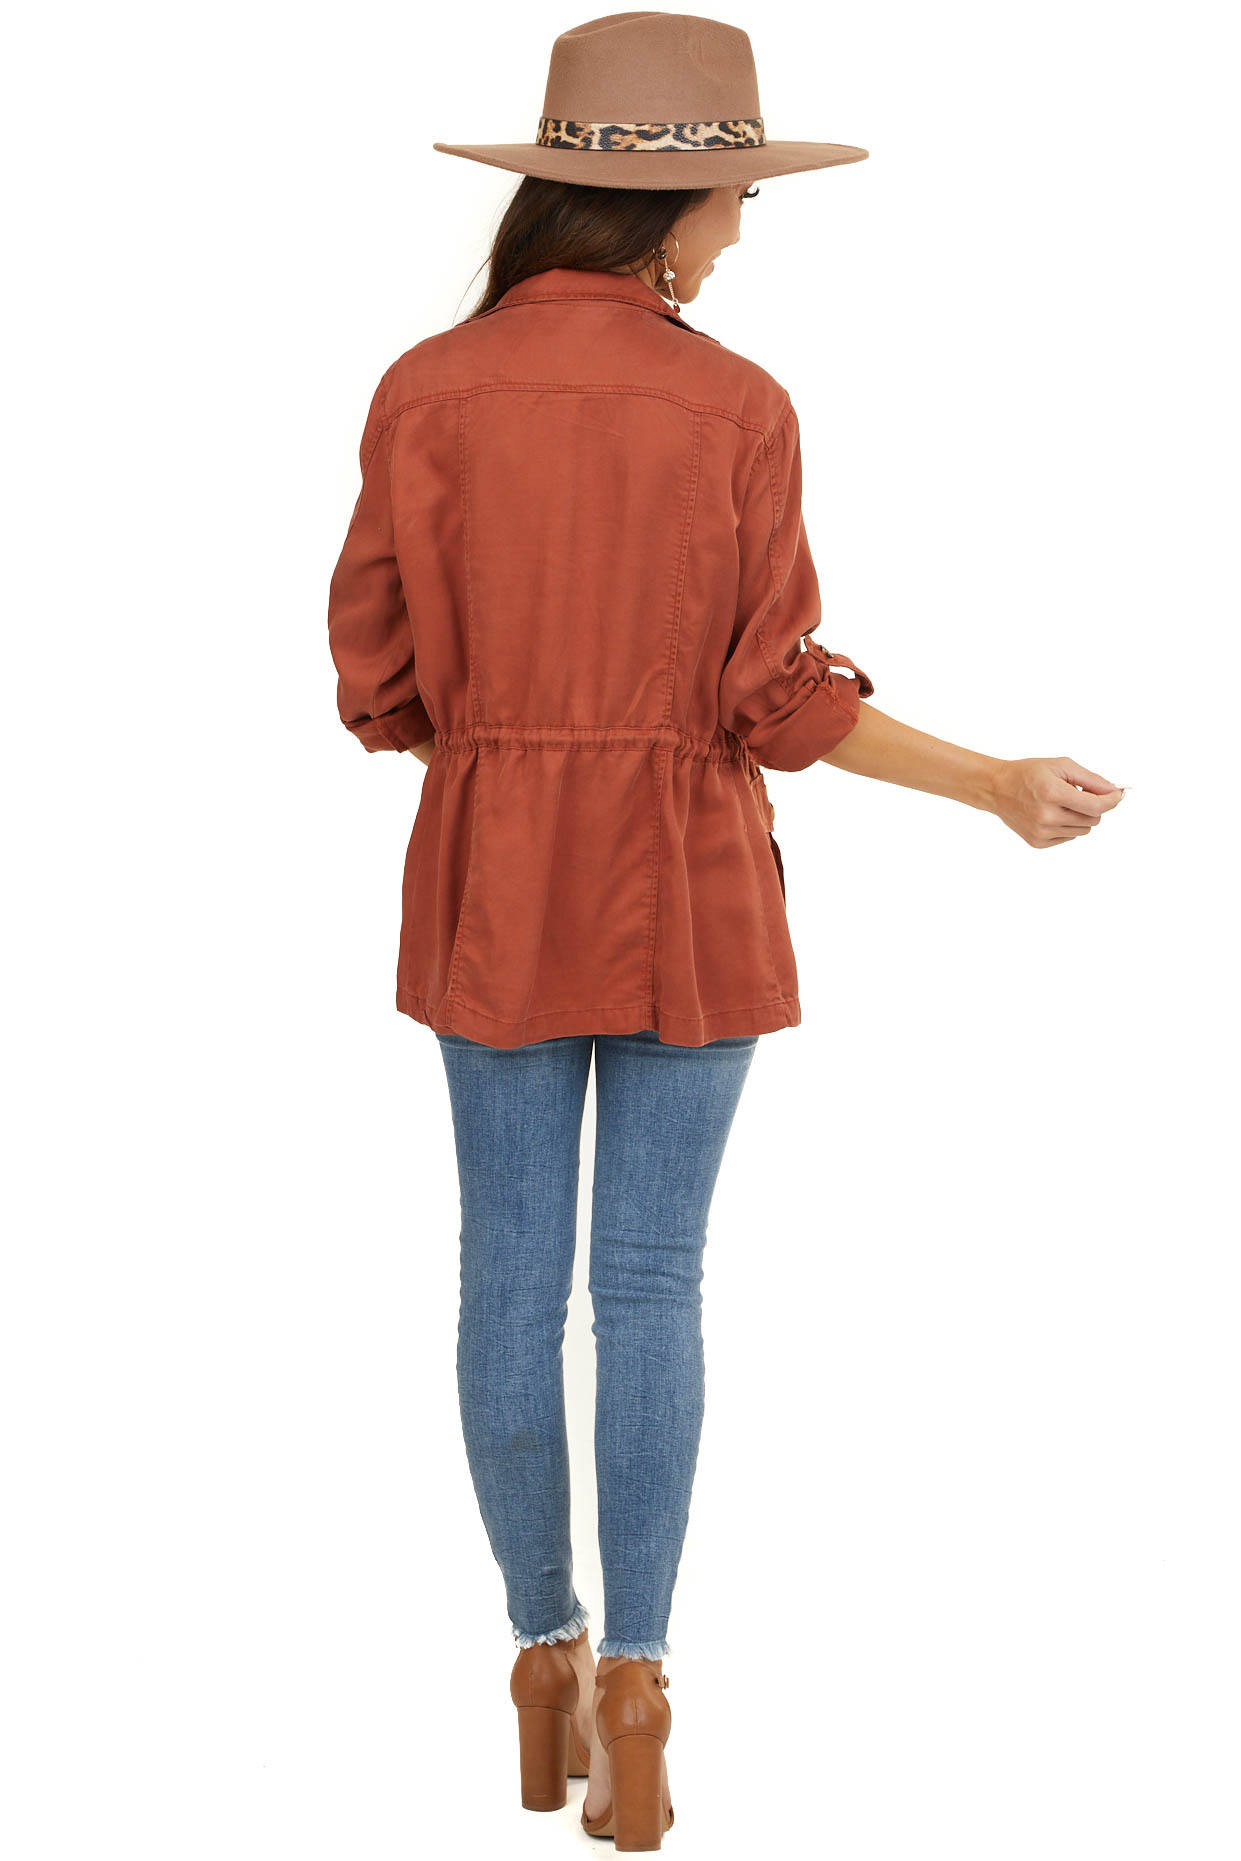 Rust Long Sleeve Jacket with Front Pocket Details